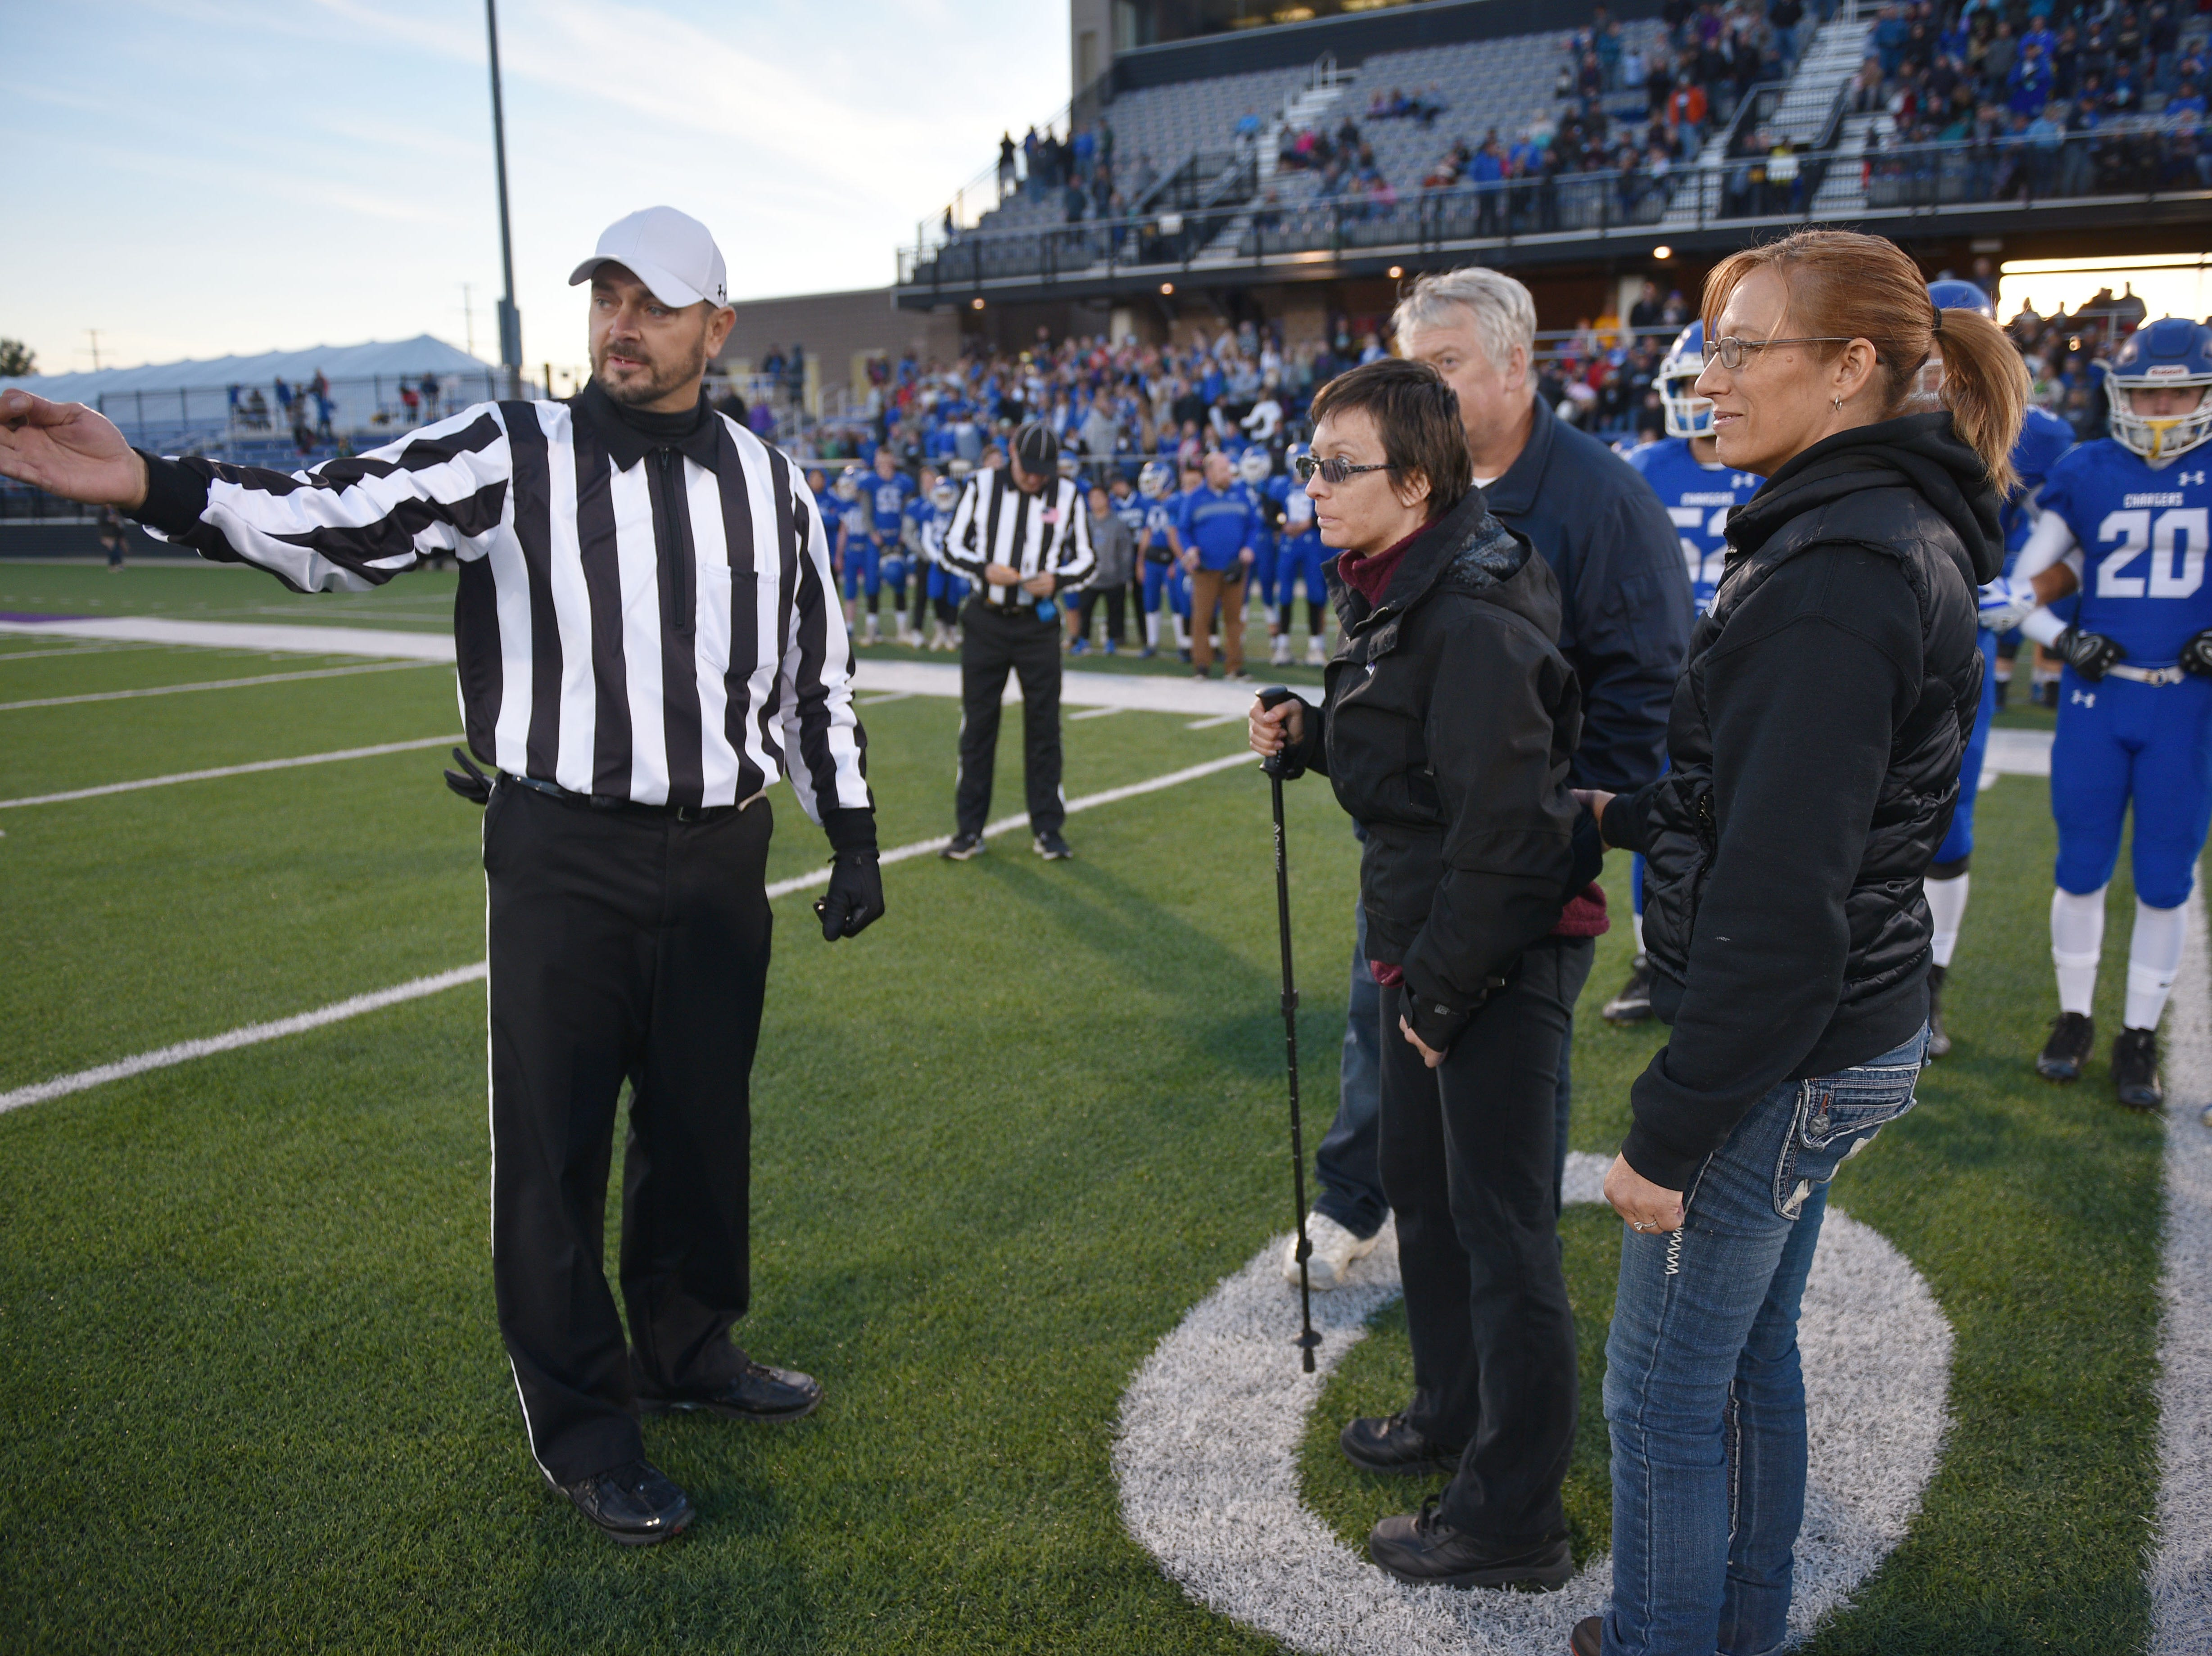 Referee Micheal Fuller gives instructions to Ashley Van Hemert for the coin toss for the Sioux Falls Christian game, Friday Sept. 28, at Bob Young Field University Of Sioux Falls Stadium.